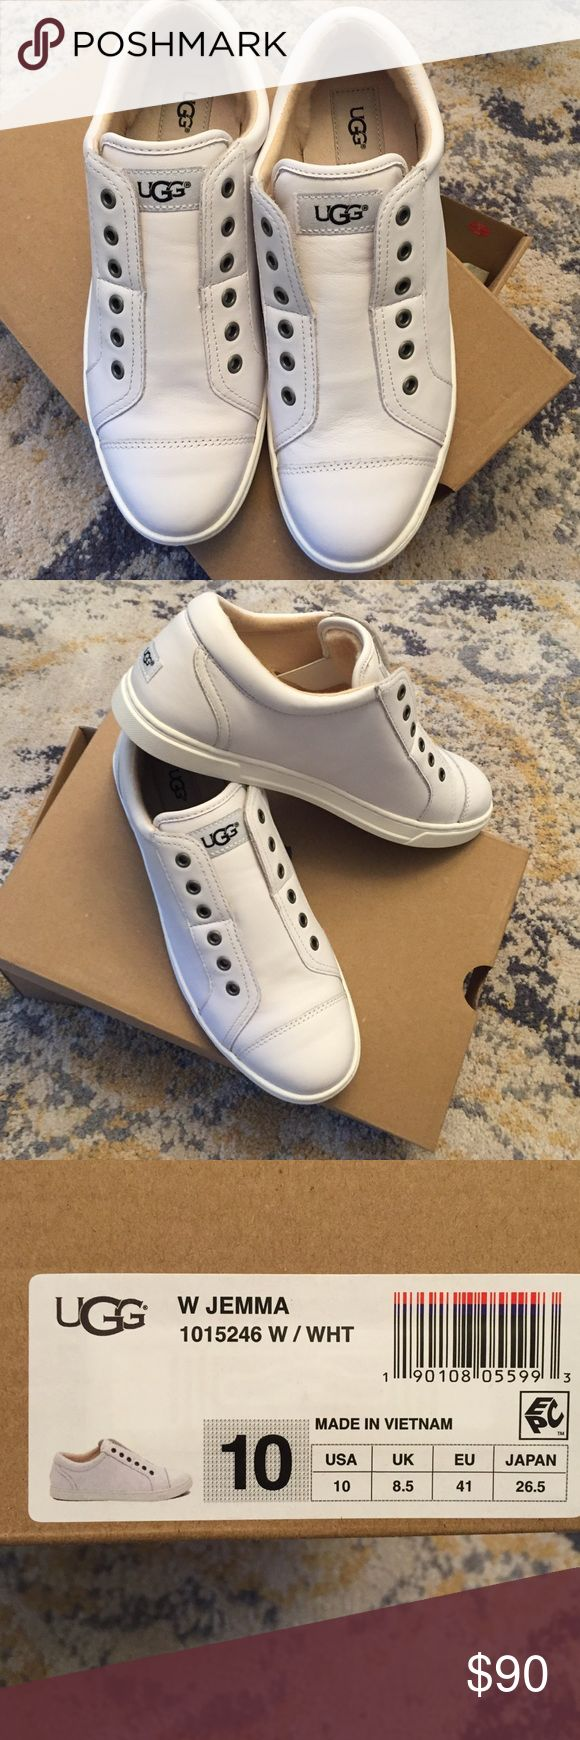 Ugg sneakers Sooo cute.  White leather lace less and super comfy.  NWT.  Never out of box! UGG Shoes